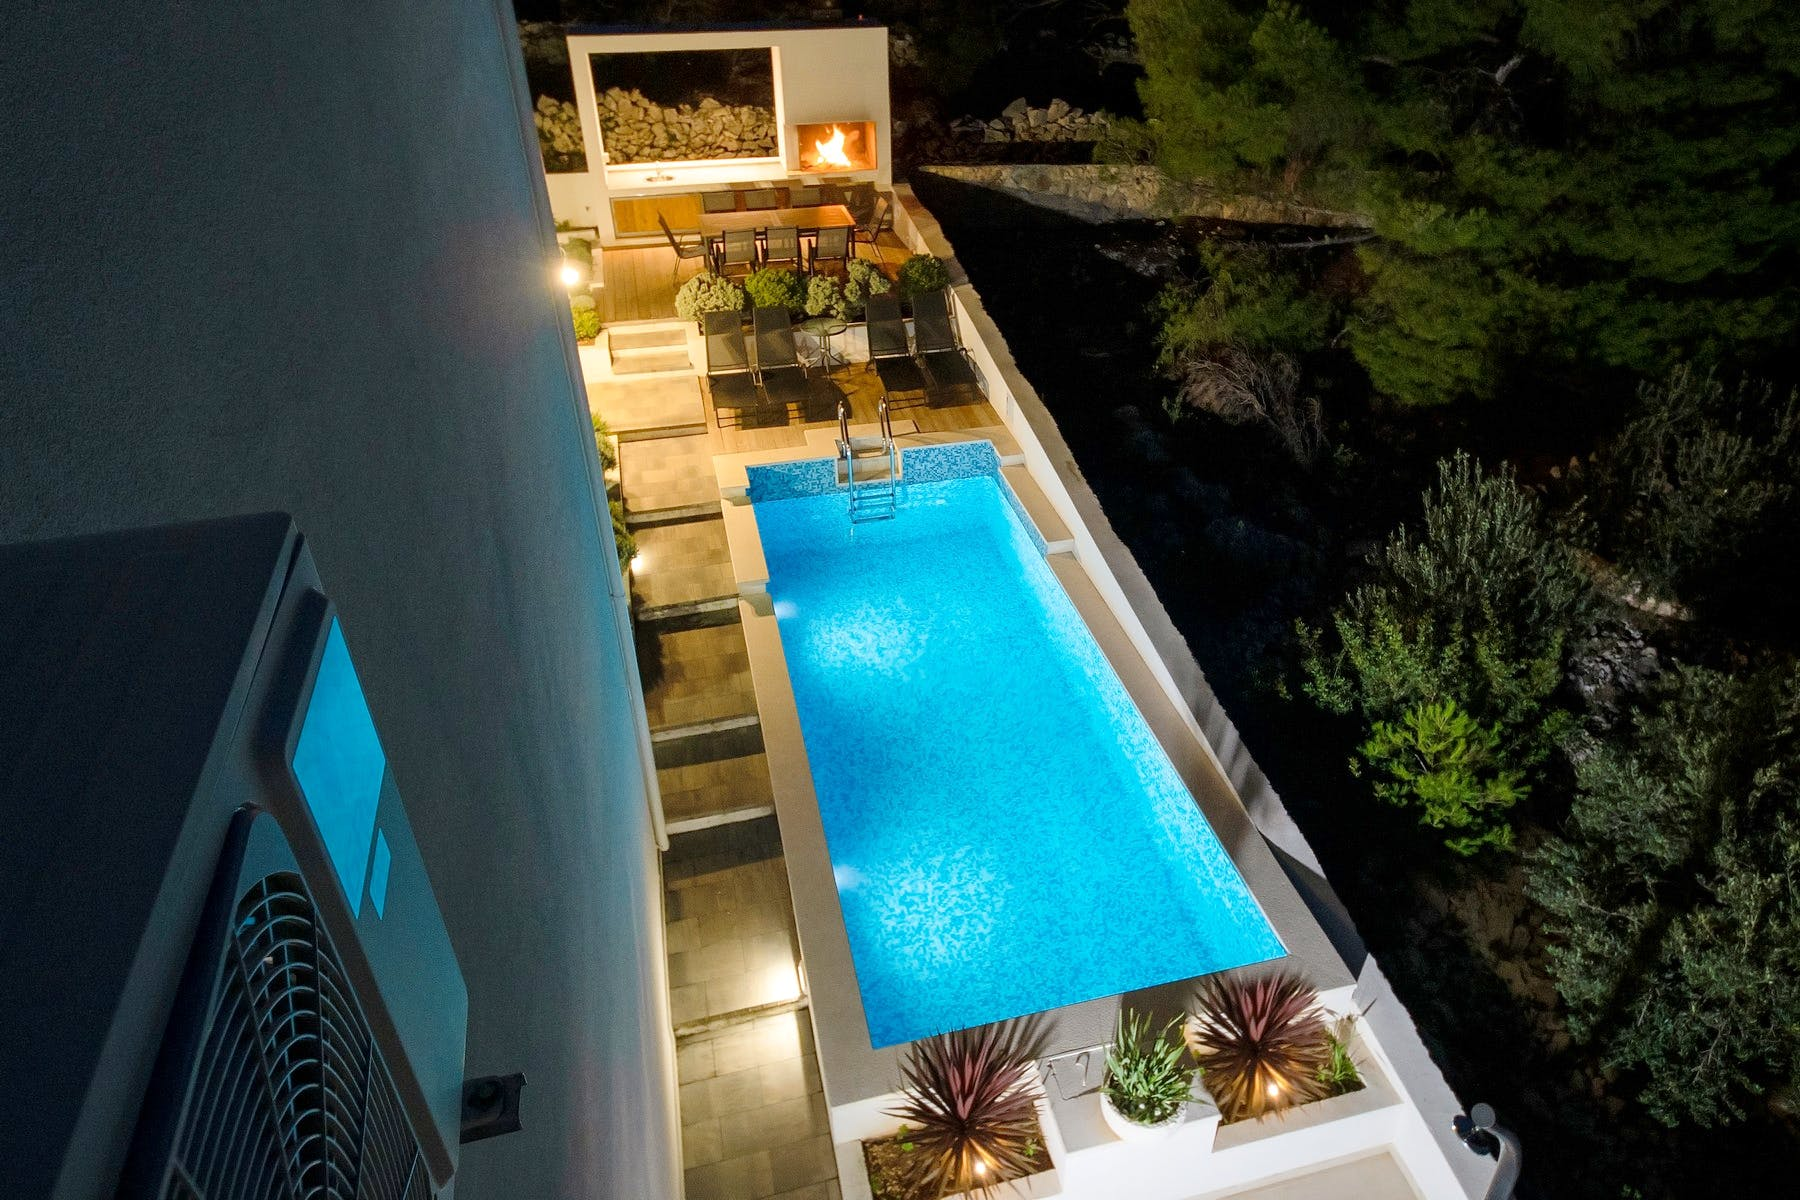 Night view of the pool, sundeck and barbecue